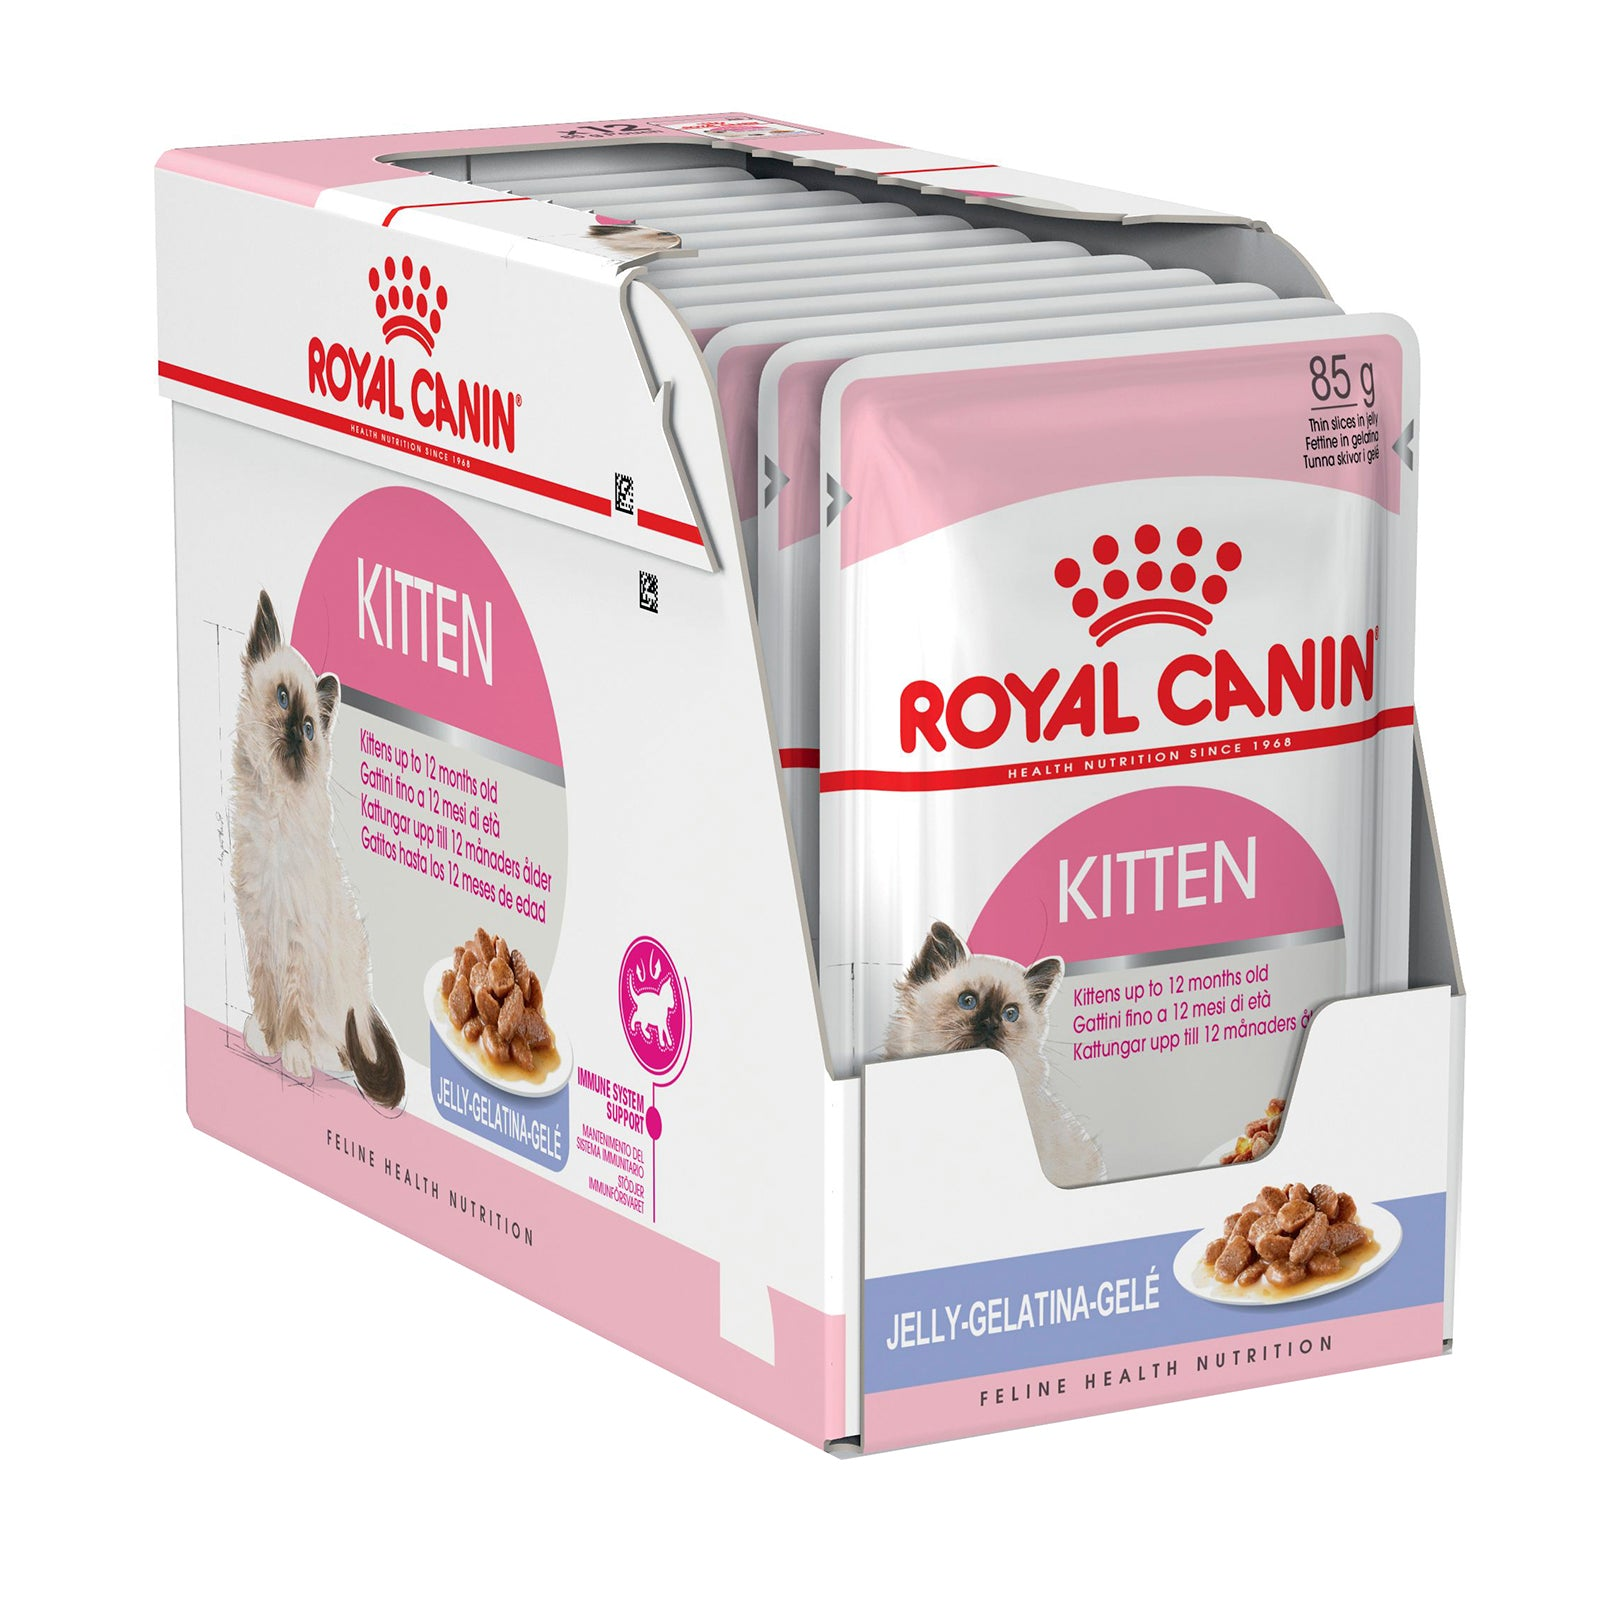 Royal Canin Cat Food Kitten in Jelly Pouch